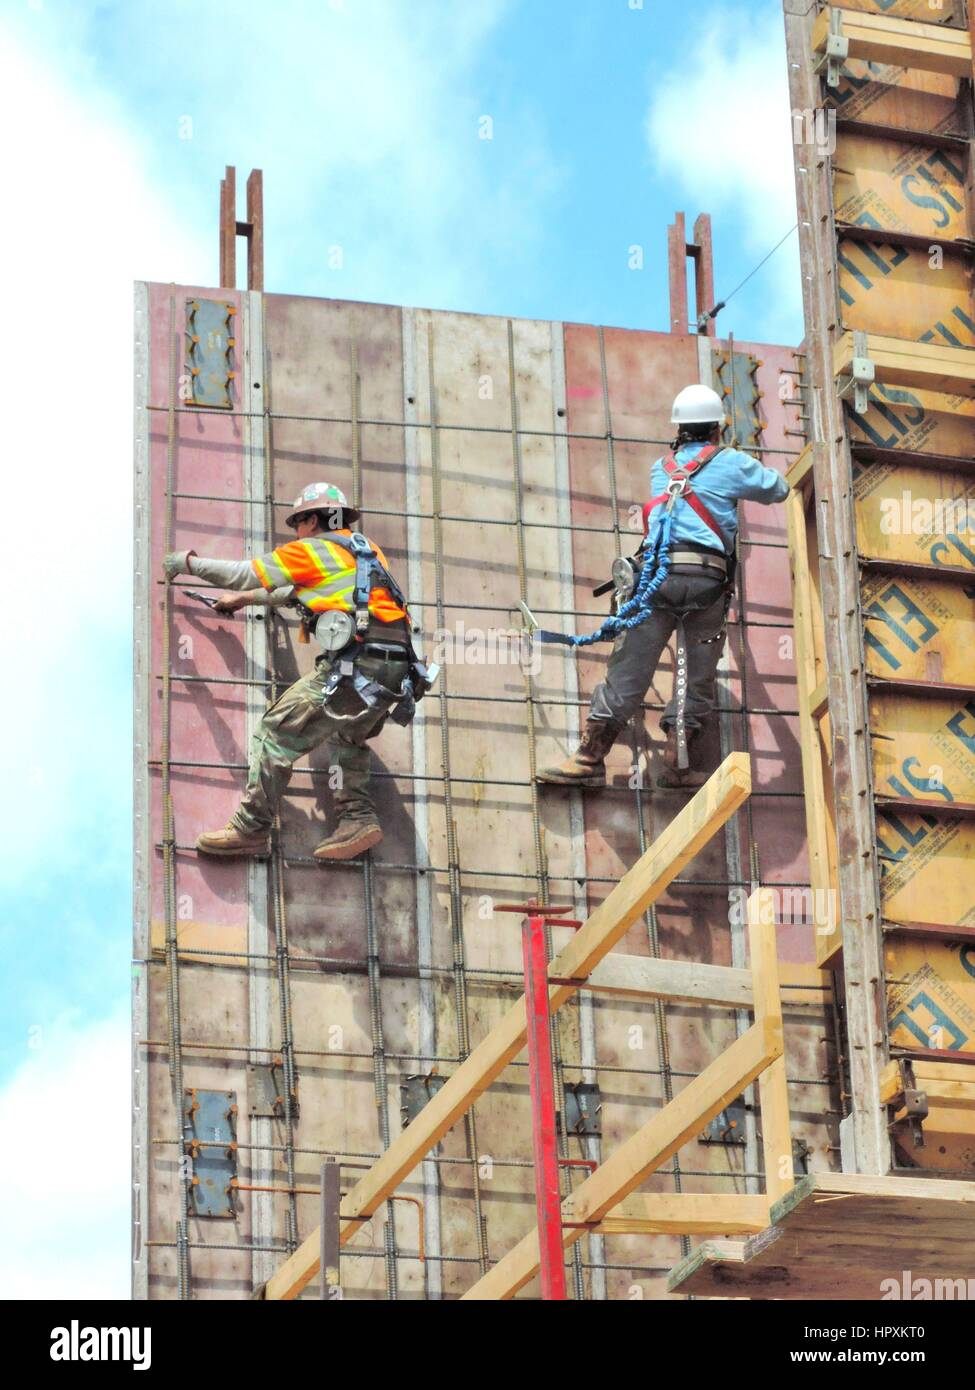 Construction Workers Working In Safety Harnesses Stock